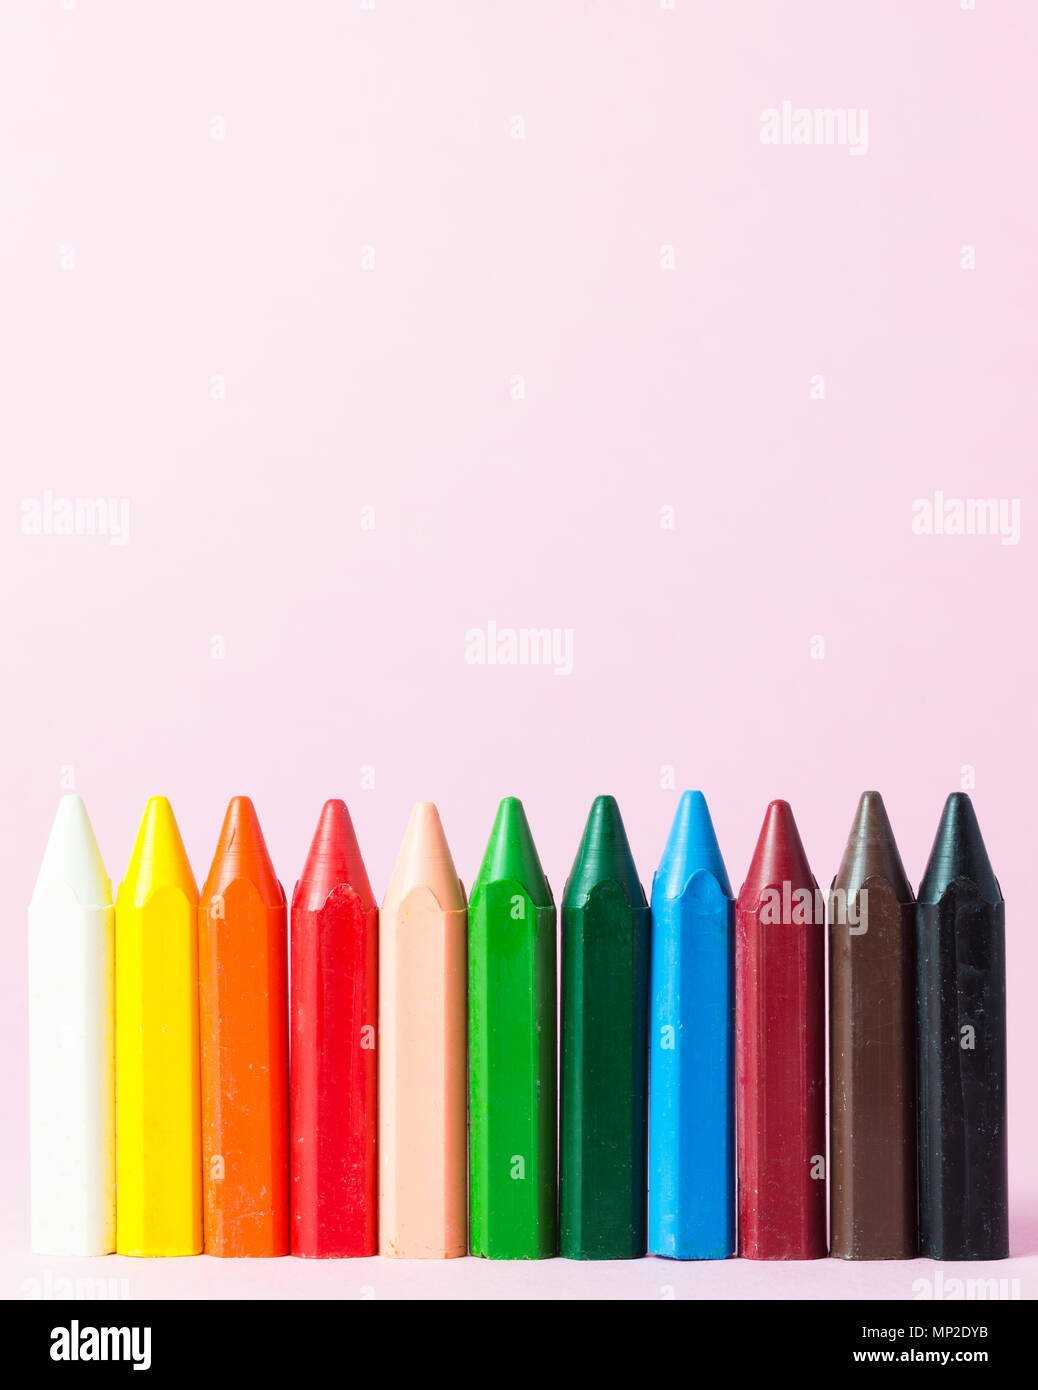 New wax crayons of various colors isolated on a pink background - Stock Image